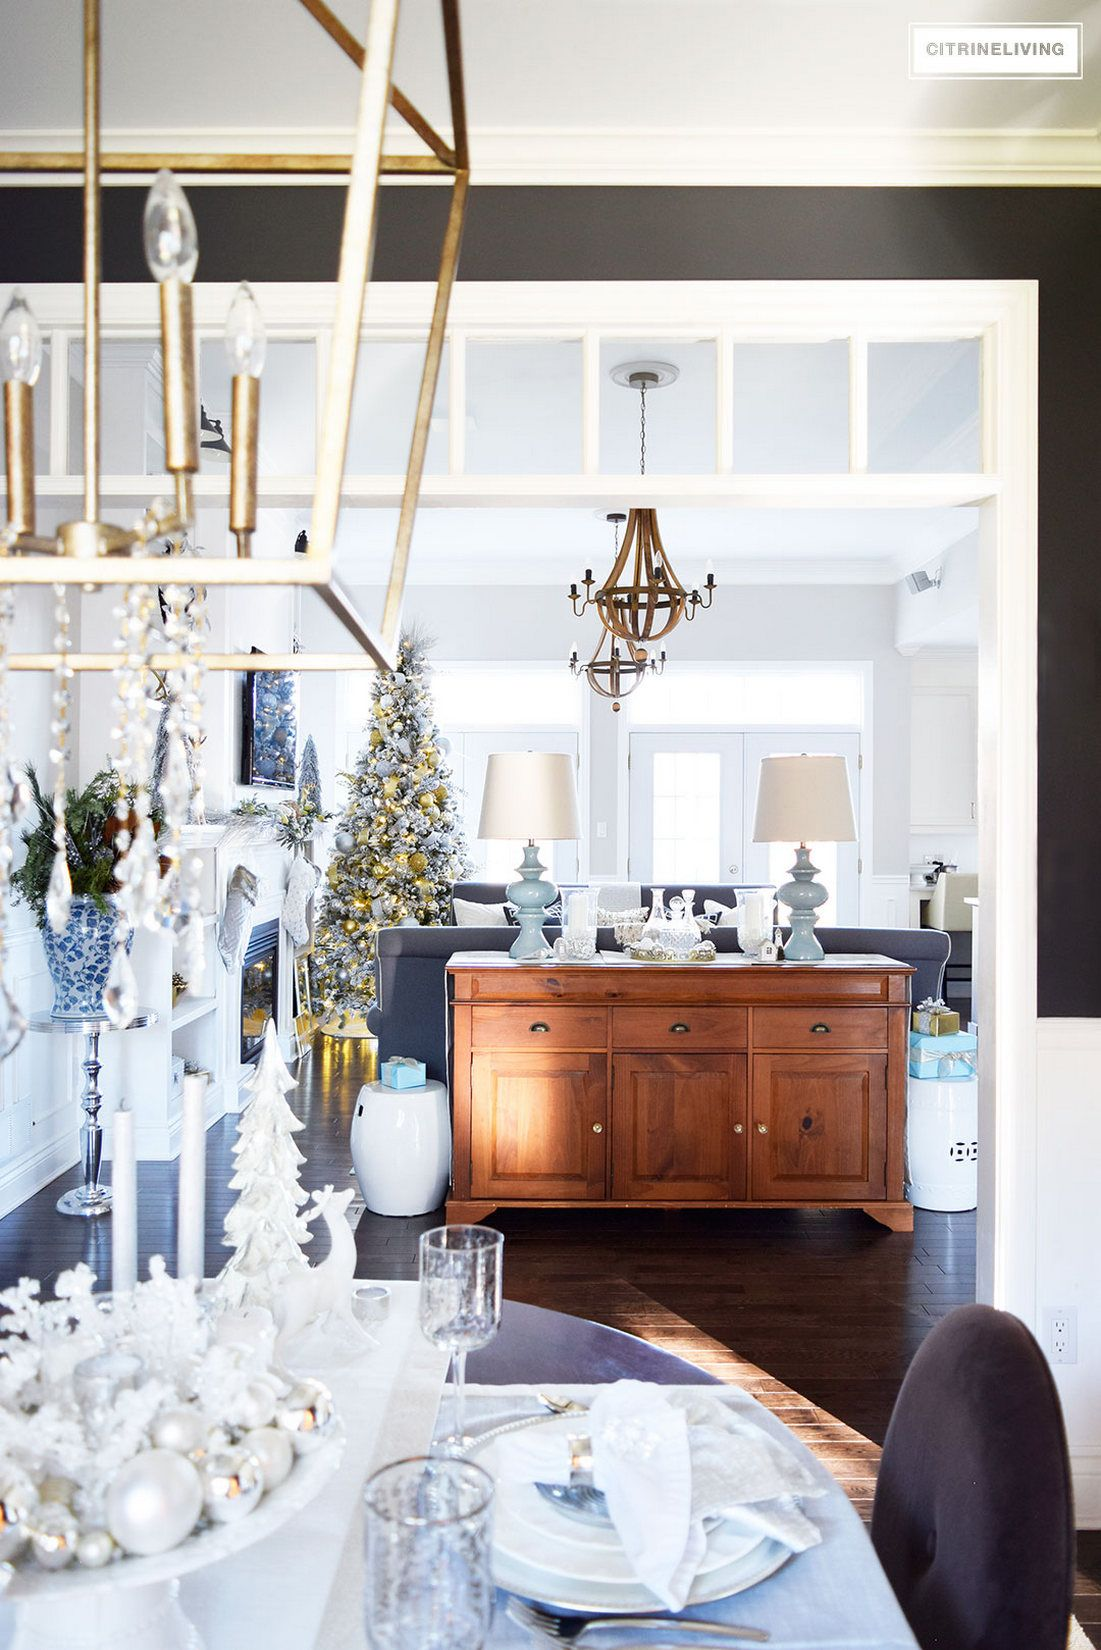 60+ Best Simple of Holiday Decorating Ideas for The Home | Homemade ...